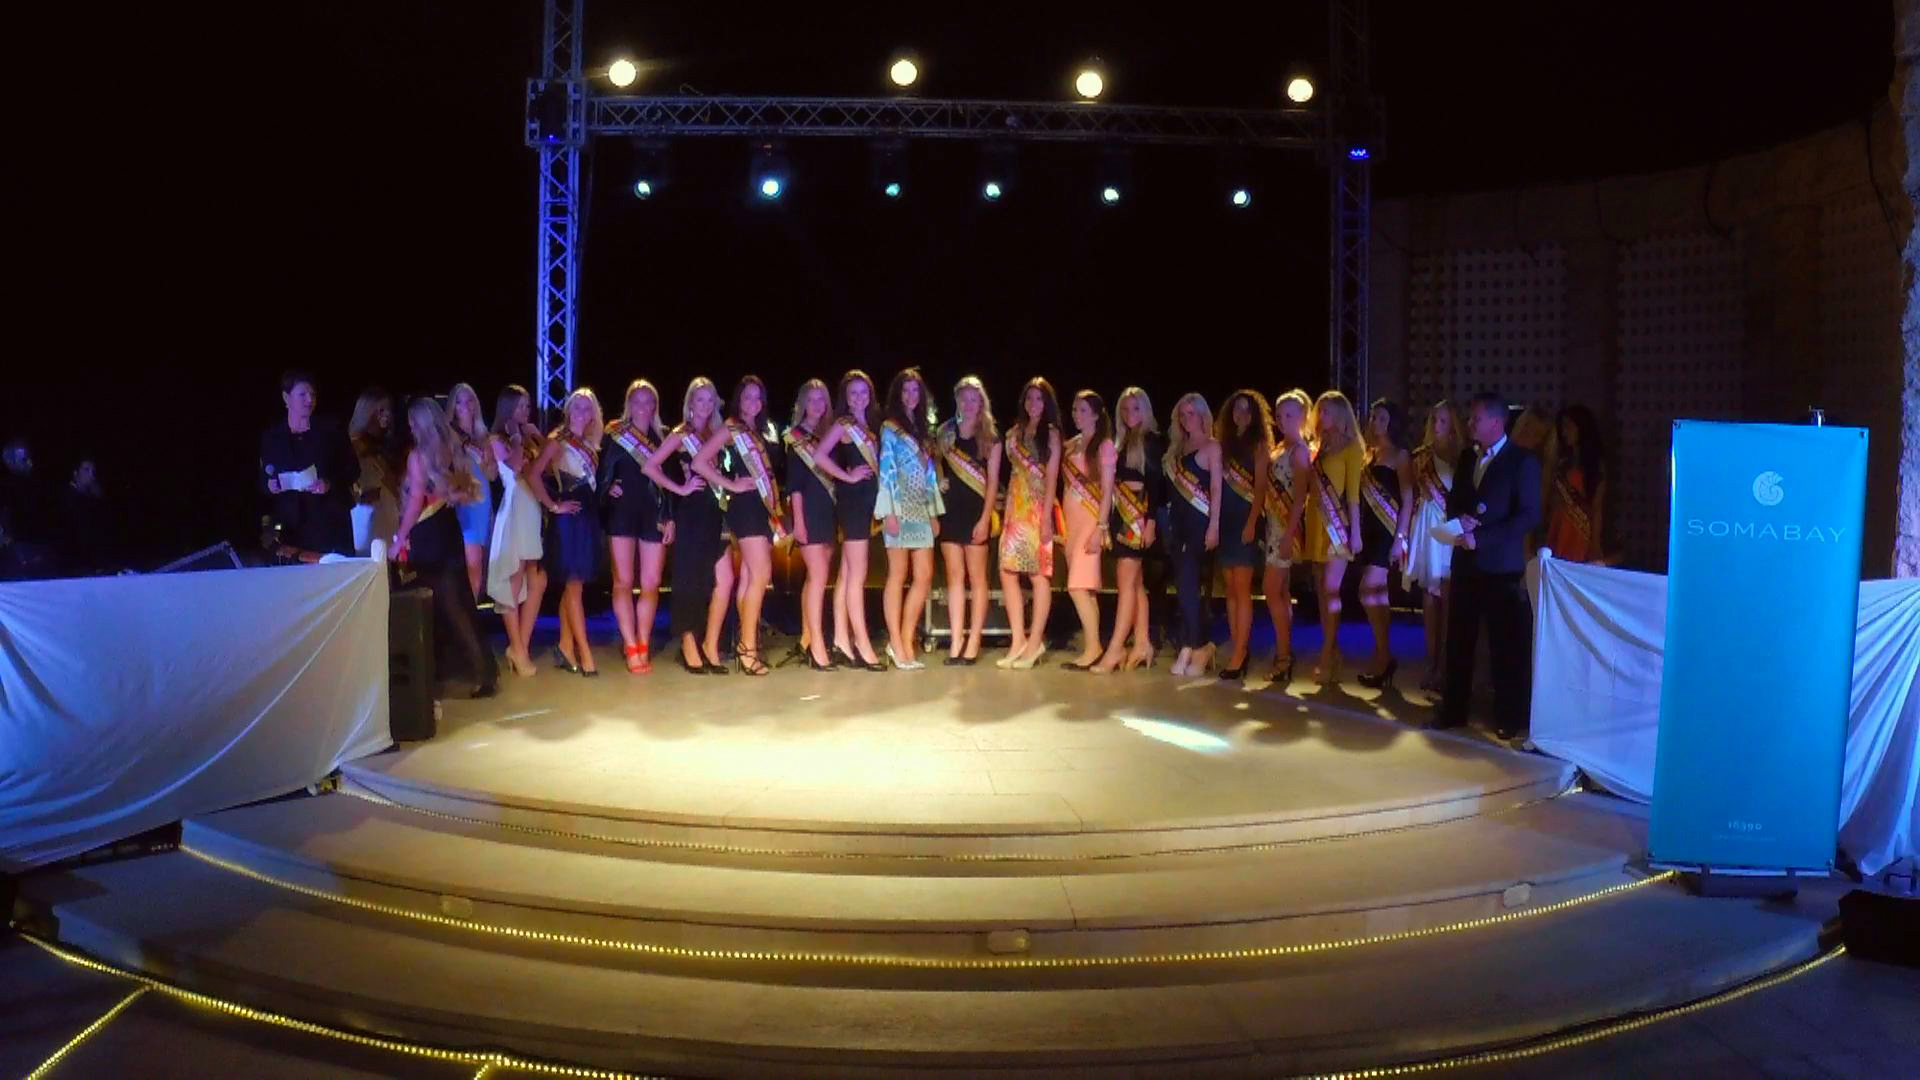 Video - Miss Germany 2015 - Wahl der Miss Somabay - Auftritt aller Missen